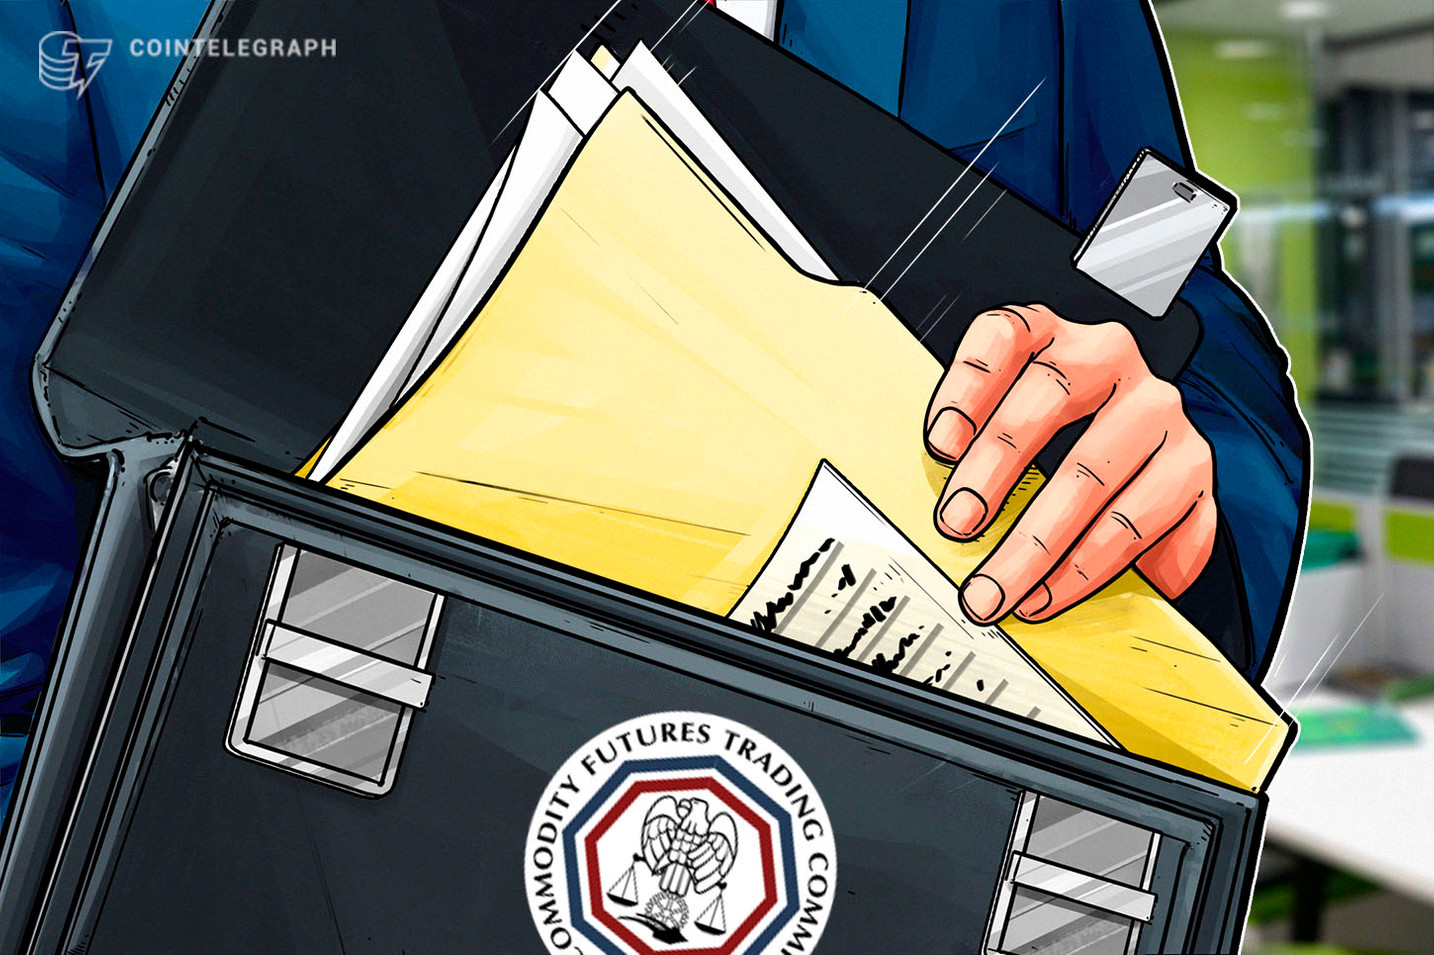 US: CFTC Seeks to 'Provide Regulatory Clarity' for Listing Virtual Currency Derivatives